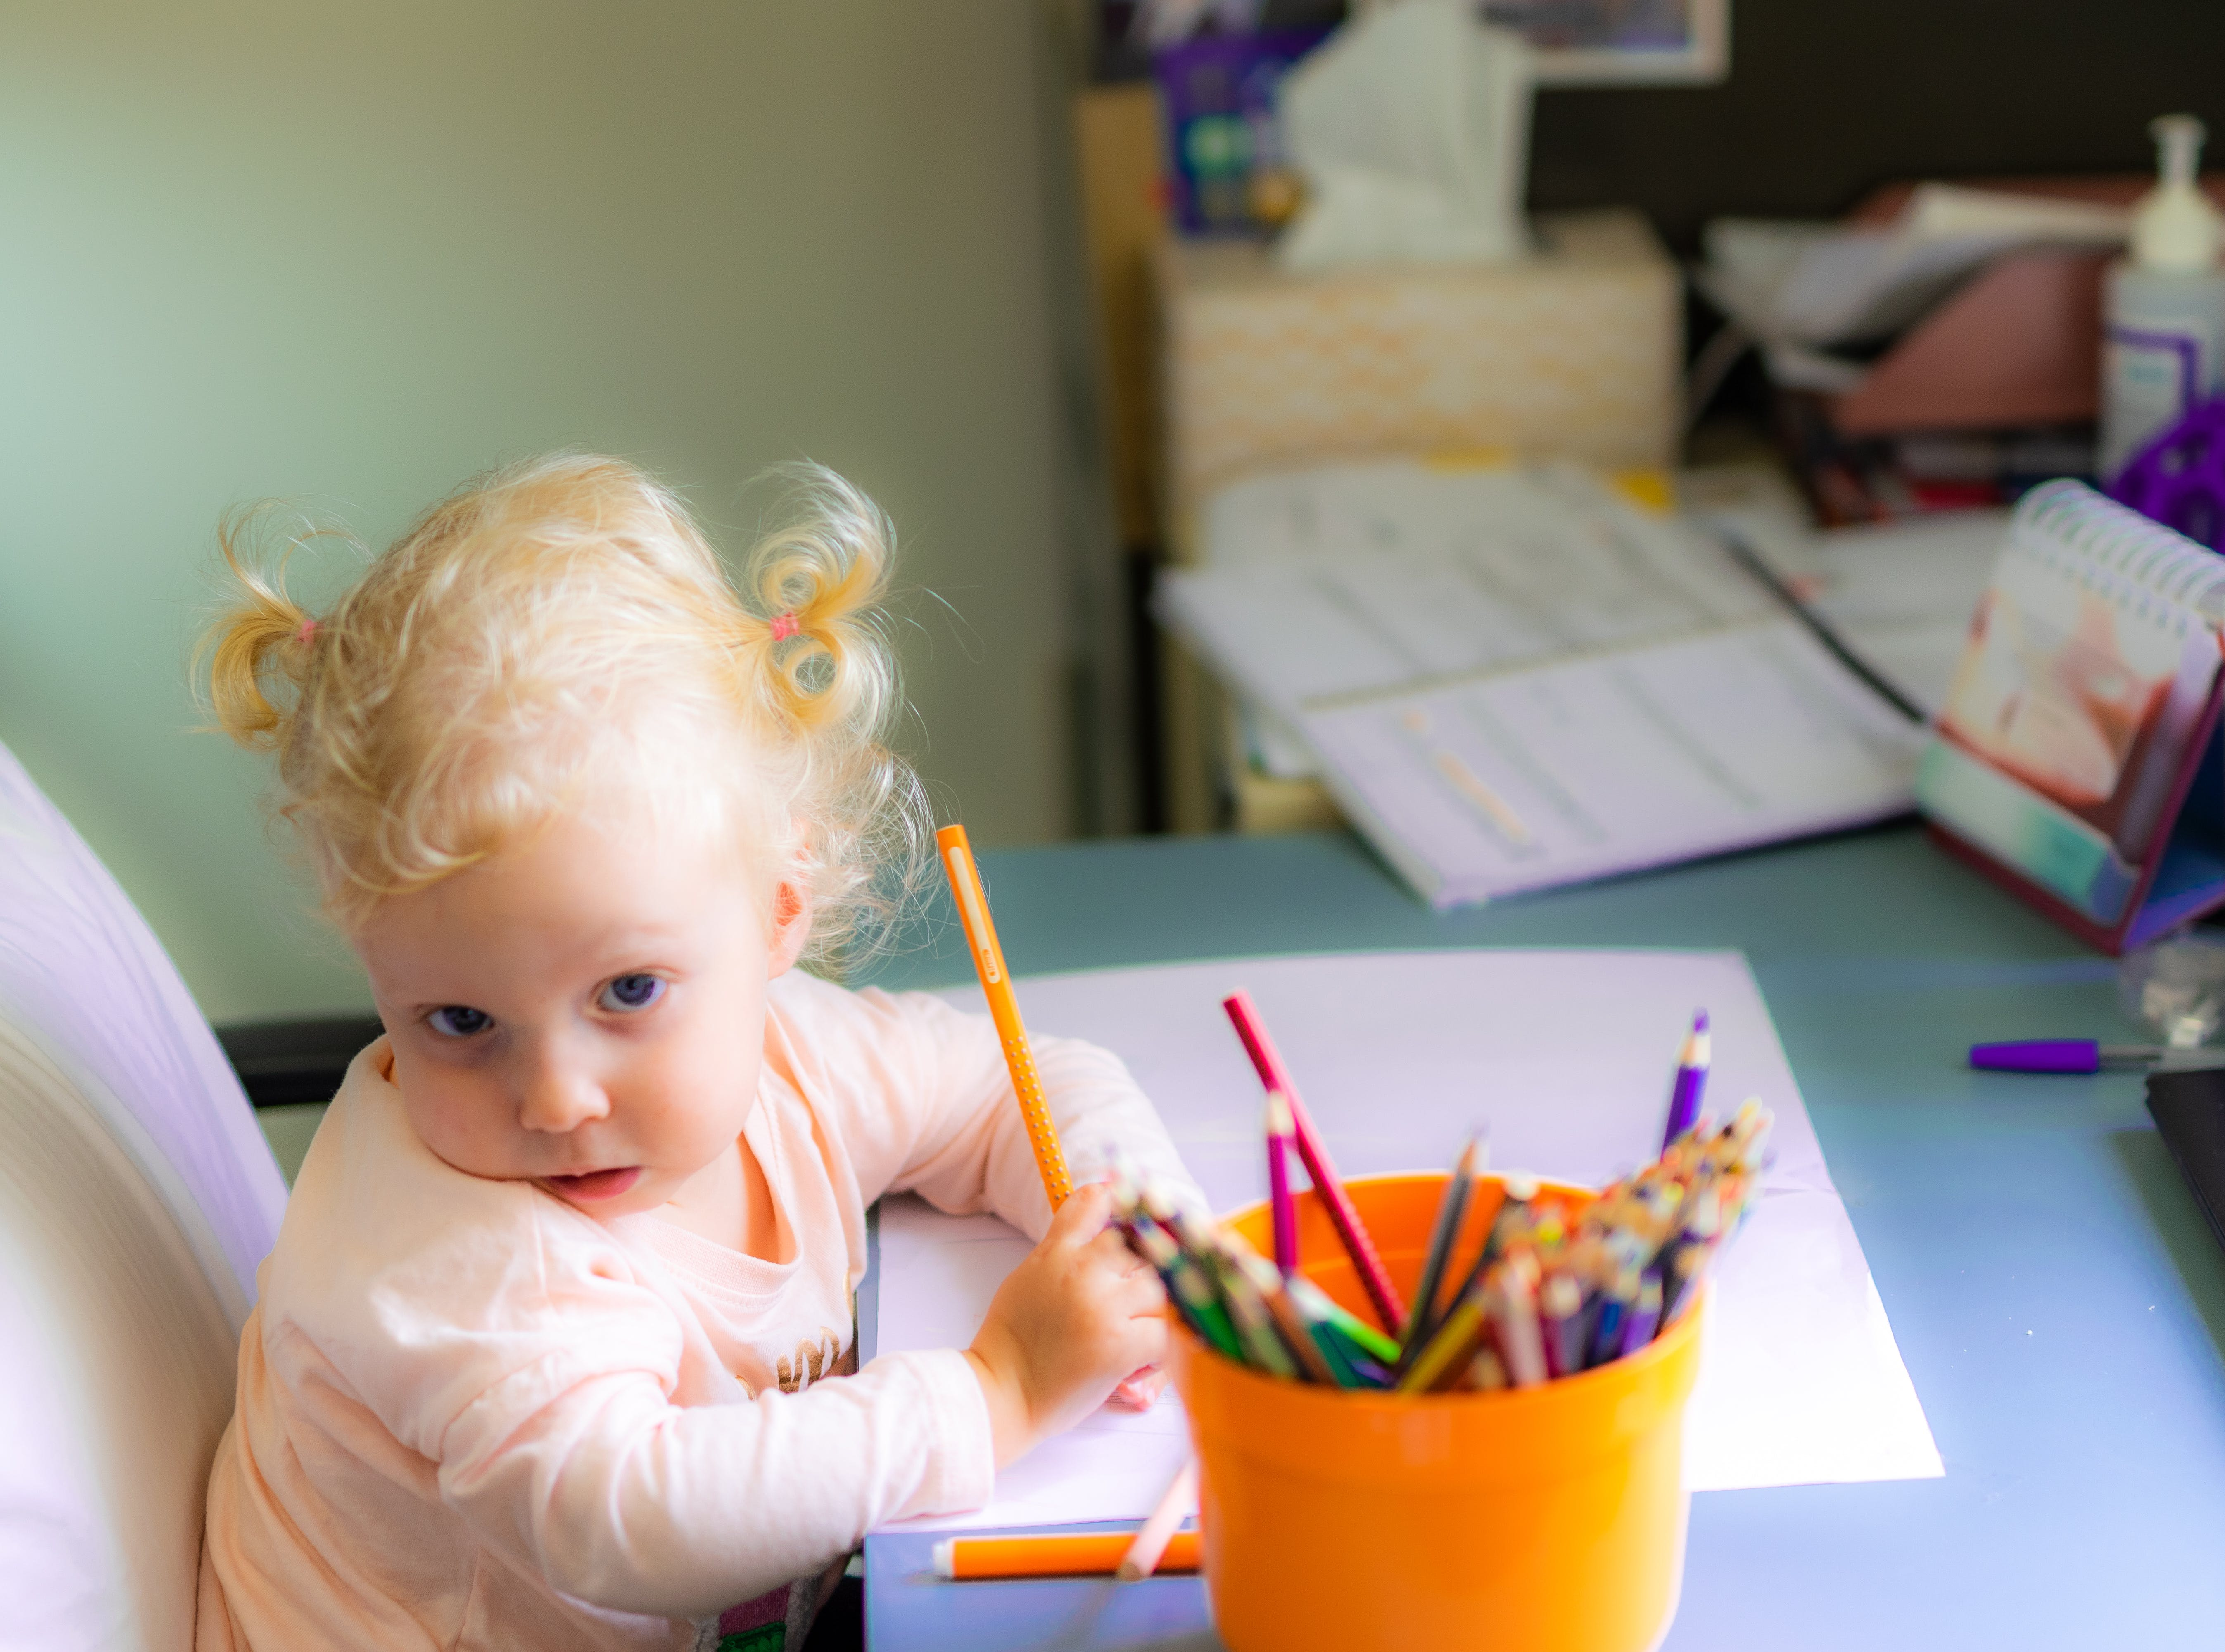 Free stock photo of blonde hair, blue eyes, chair, colored pencils